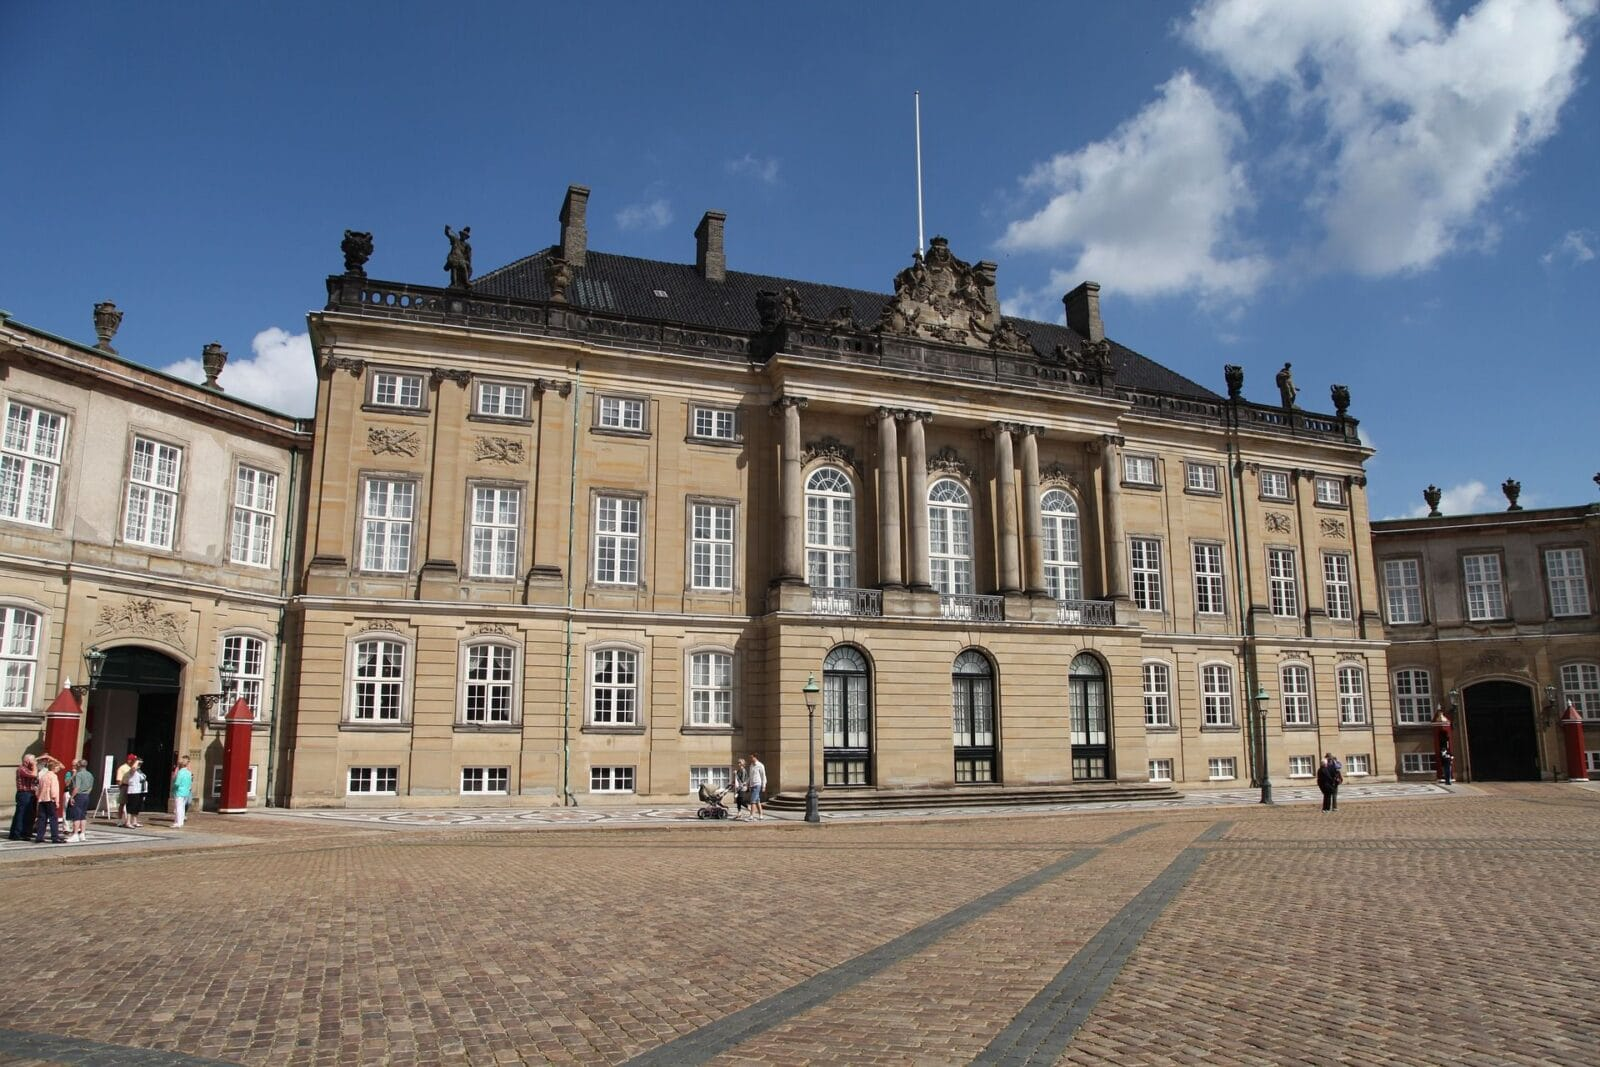 One day in Copenhagen? Dont forget to see Amalienborg Palace